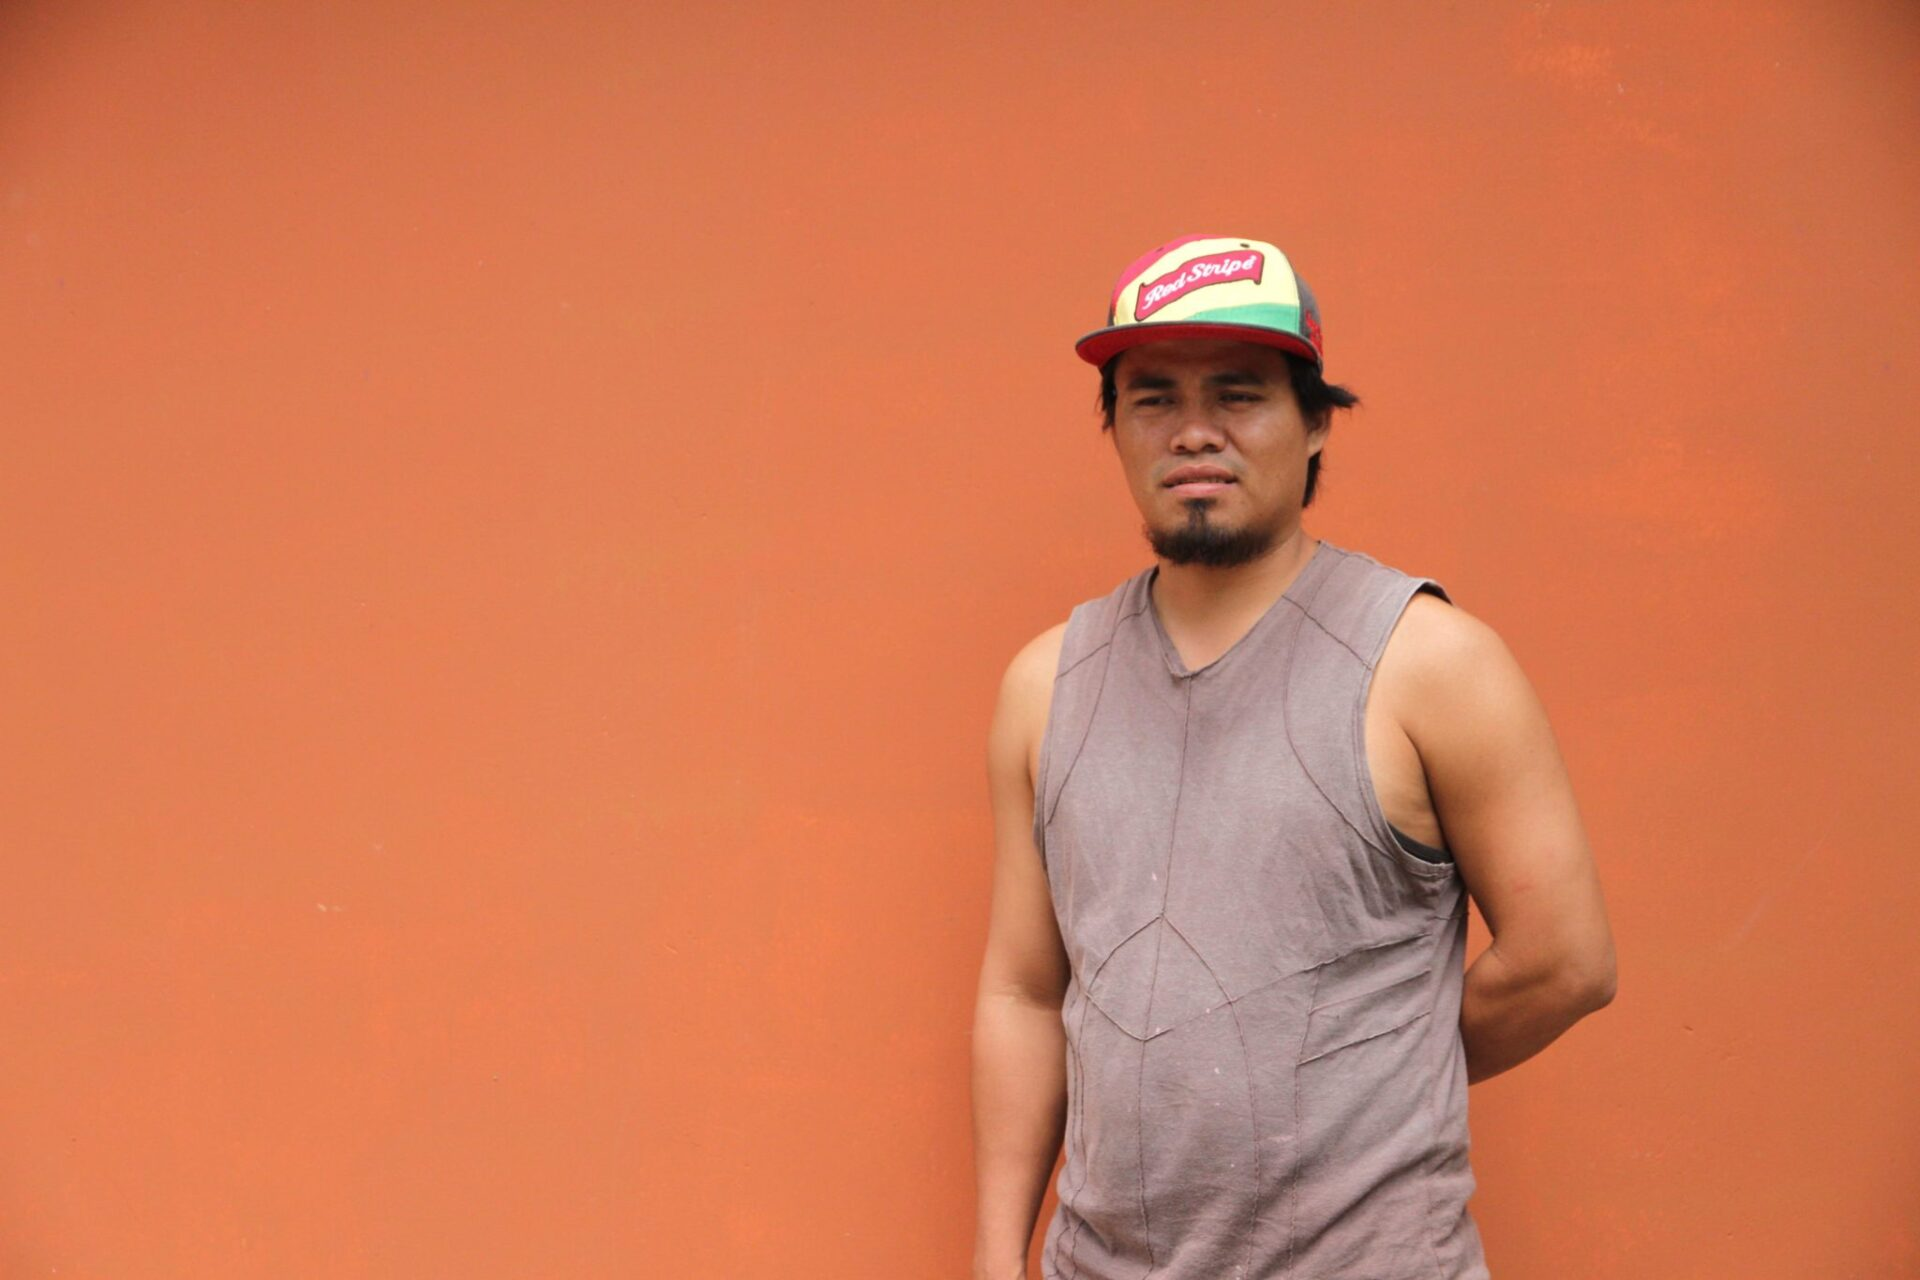 Julio Cabrera about to start his mural